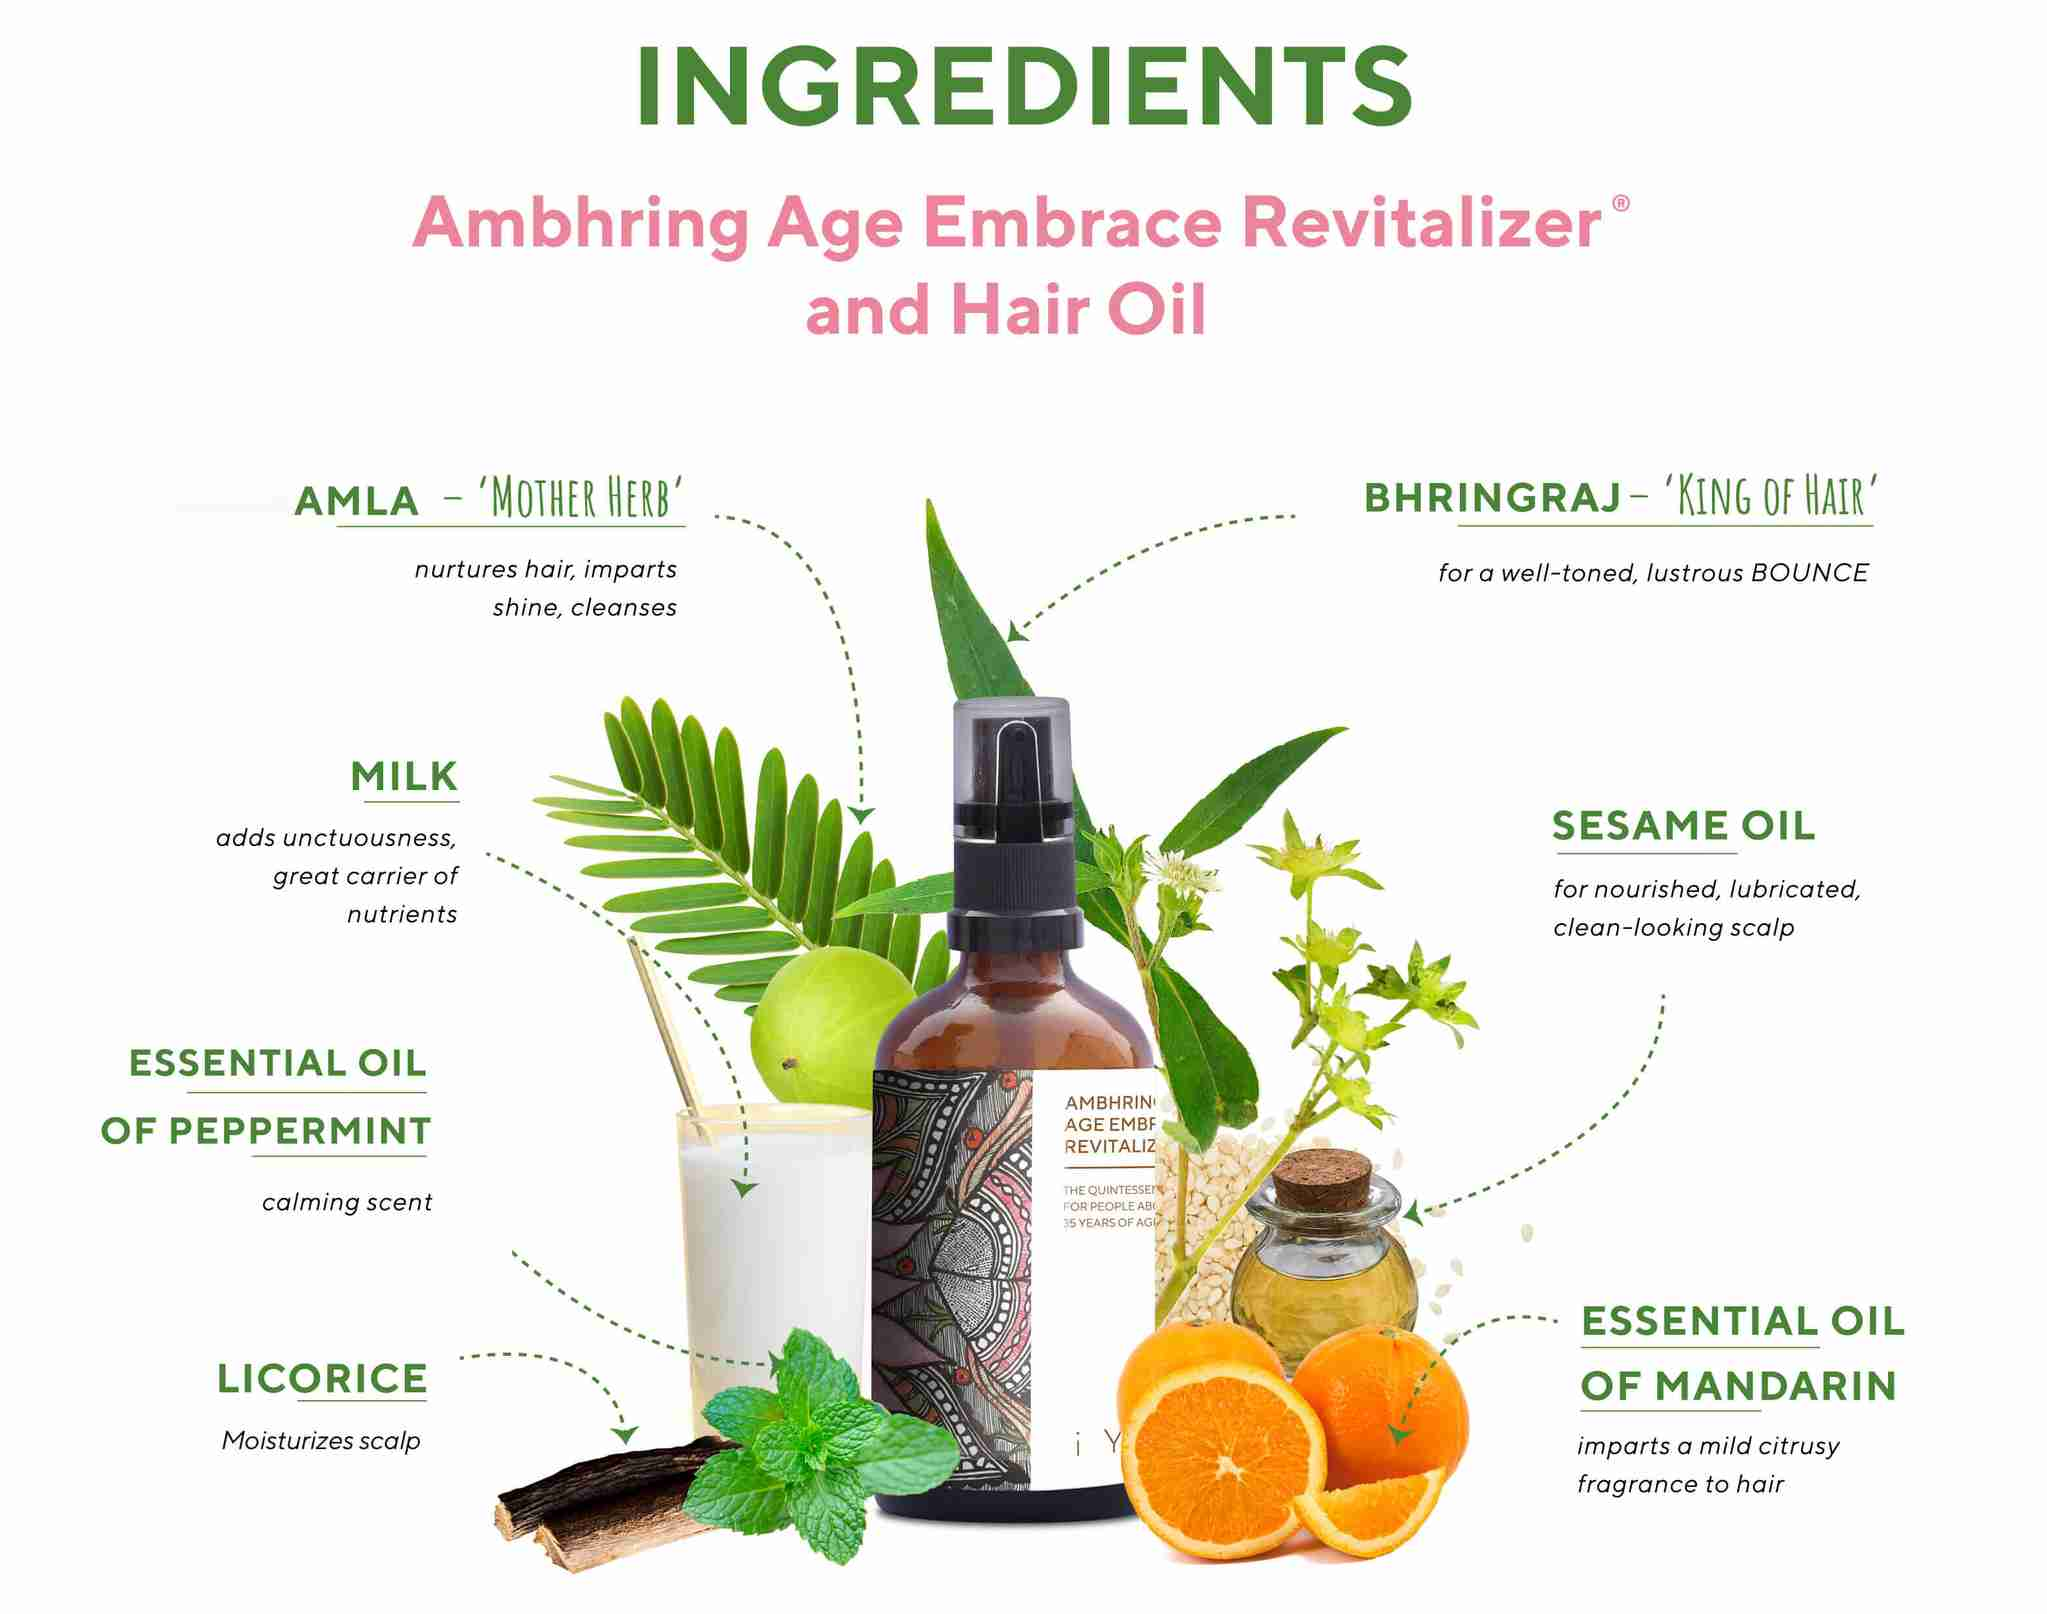 AMBHRING AGE-EMBRACE REVITALIZER AND HAIR OIL List of Ingredients: Ayurveda's quintessential hair oil for men and women above 35 - Ambhring gives you gorgeous, full-bodied & healthy-looking hair. Save on expensive spas with this treatment that's better than all luxury spas put together.